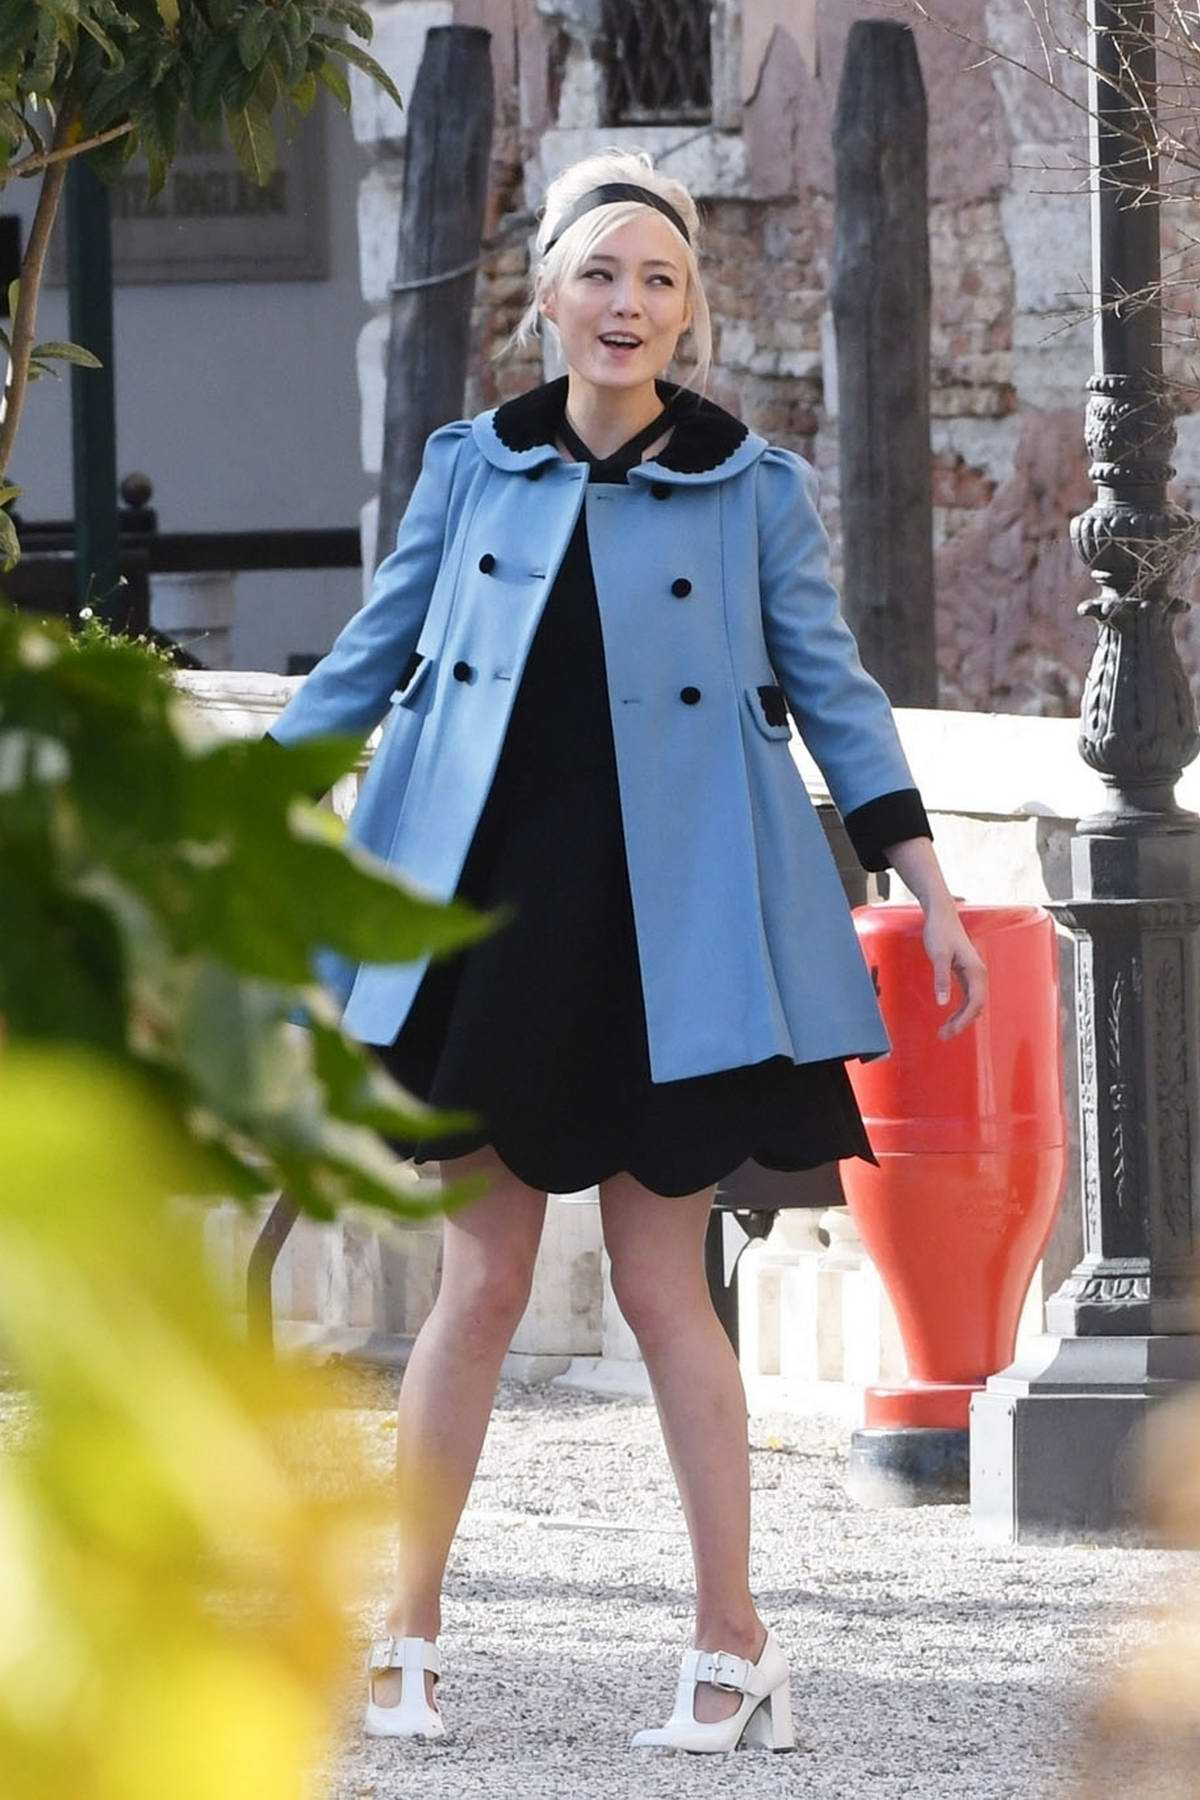 Pom Klementieff spotted in a garden while making videos on her mobile phone with Simon Pegg in Venice, Italy